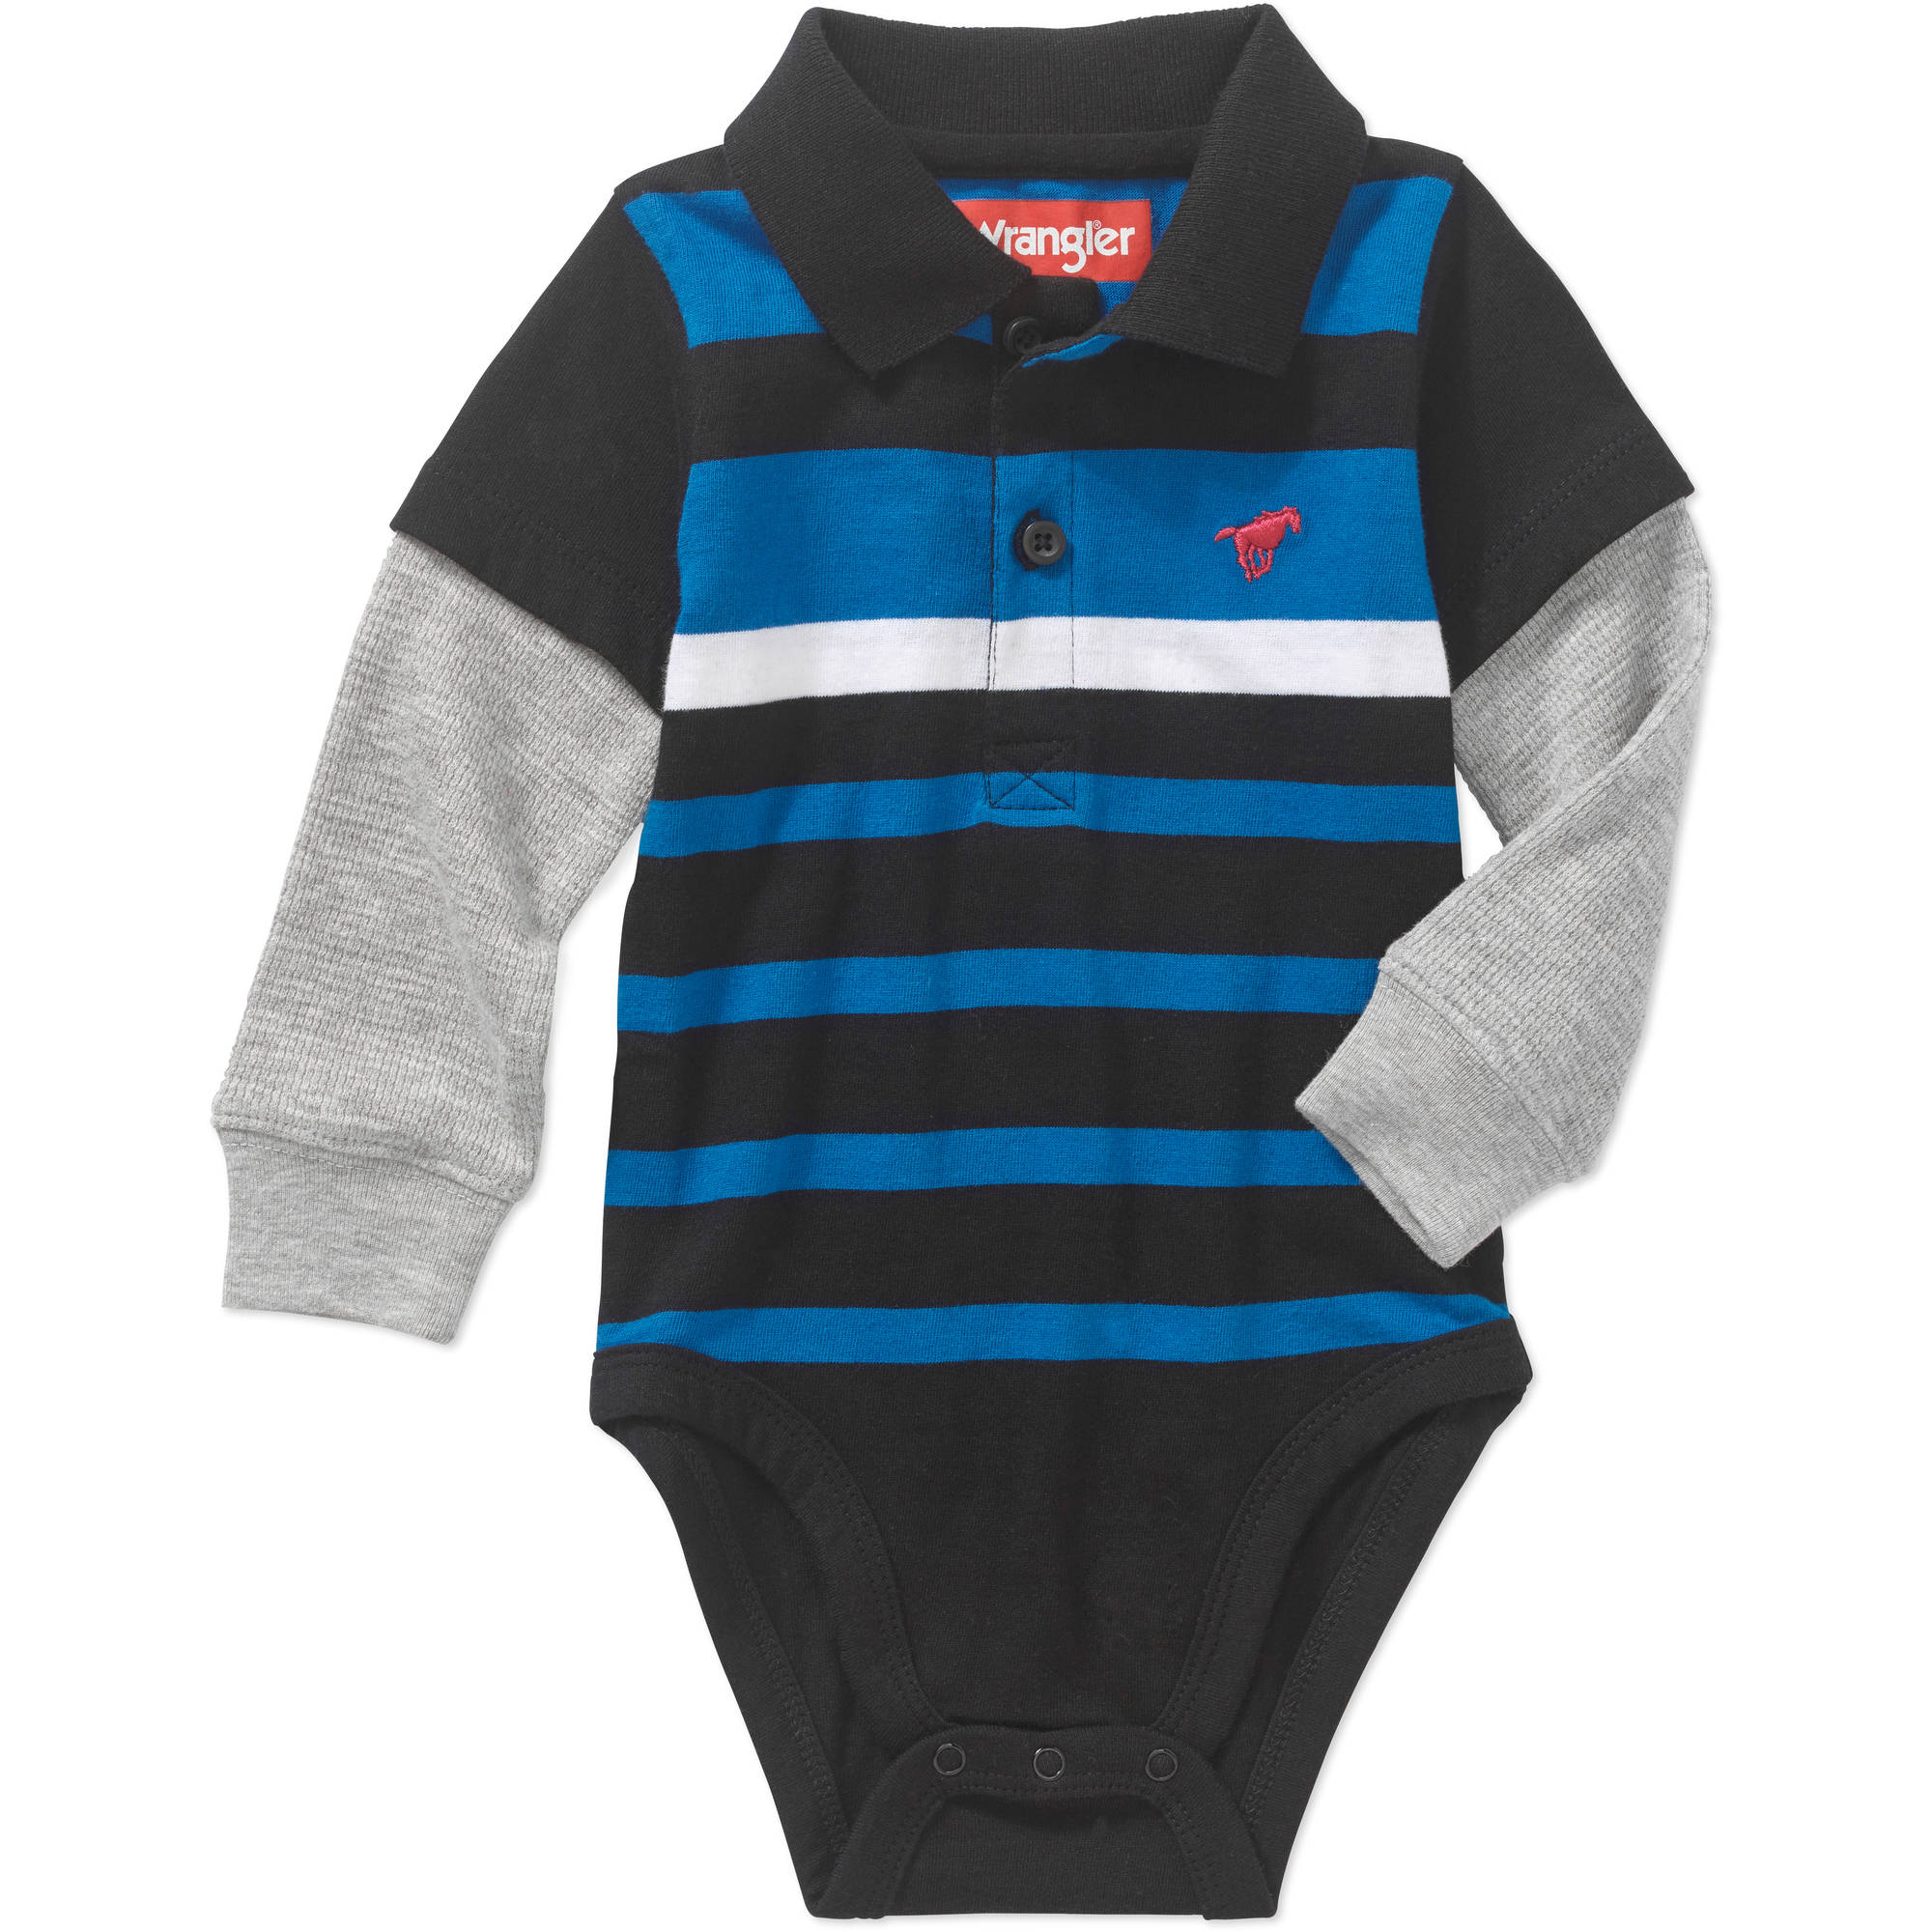 Wrangler Newborn Baby Boys' Long Sleeve Knit Bodysuit